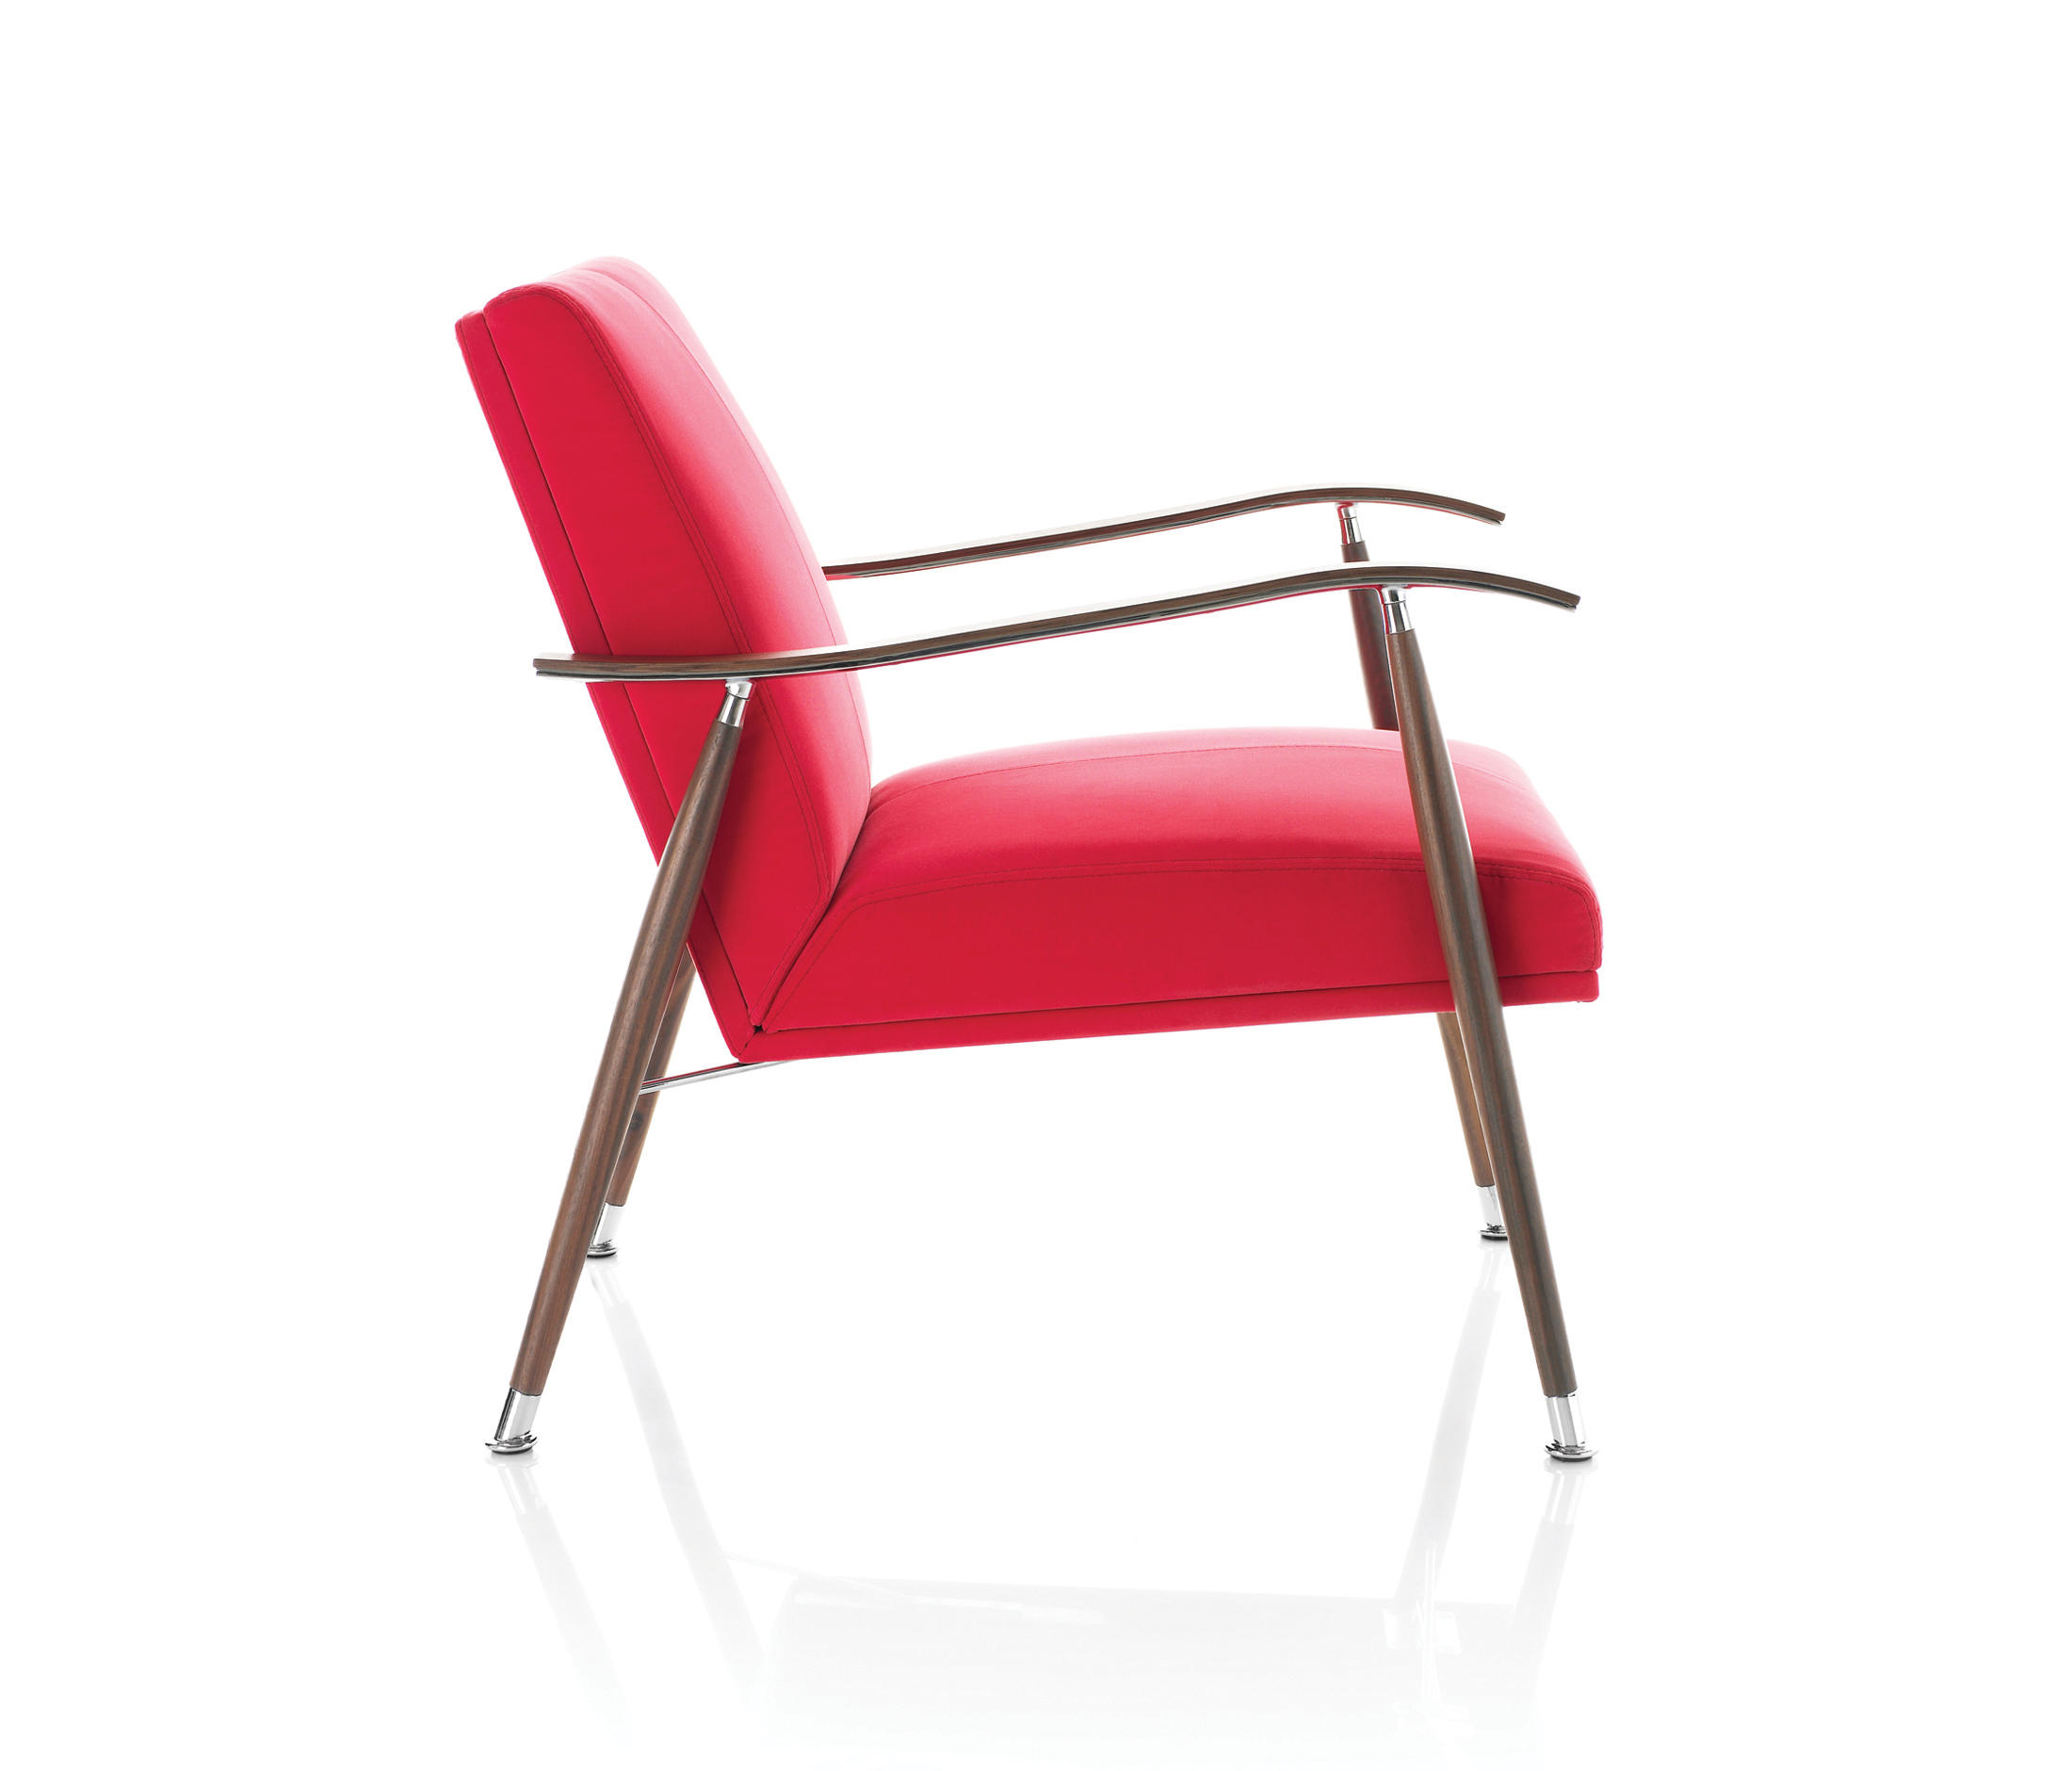 SAHARA WOOD EASY CHAIR Lounge chairs from Lammhults